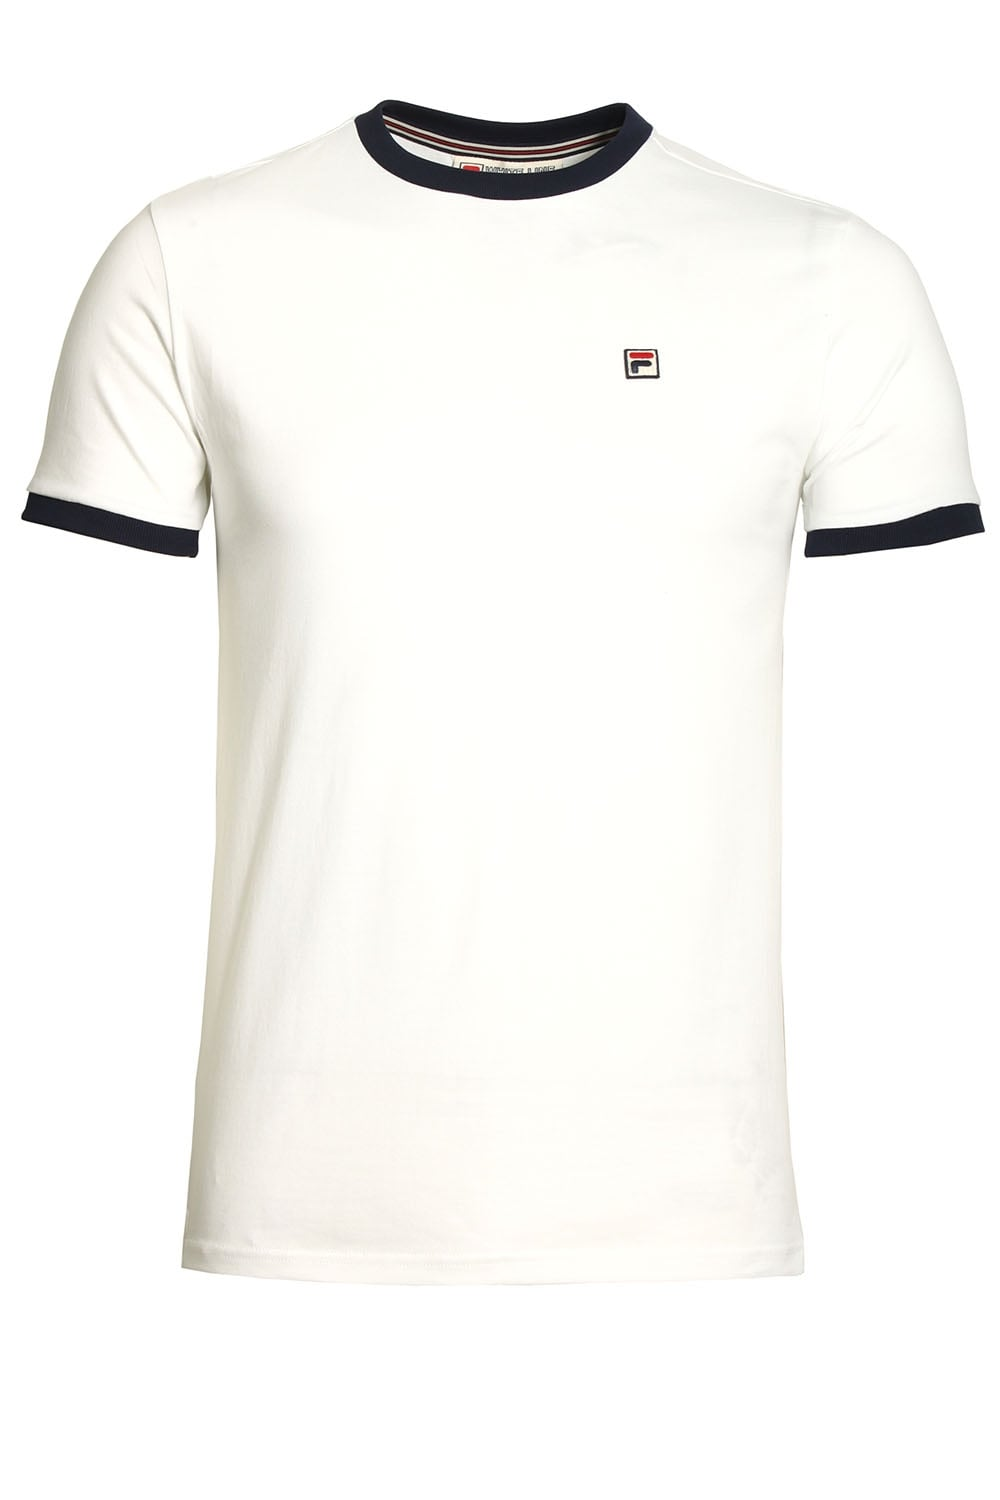 Marconi Essential Ringer T-Shirt White 82e609f162a5